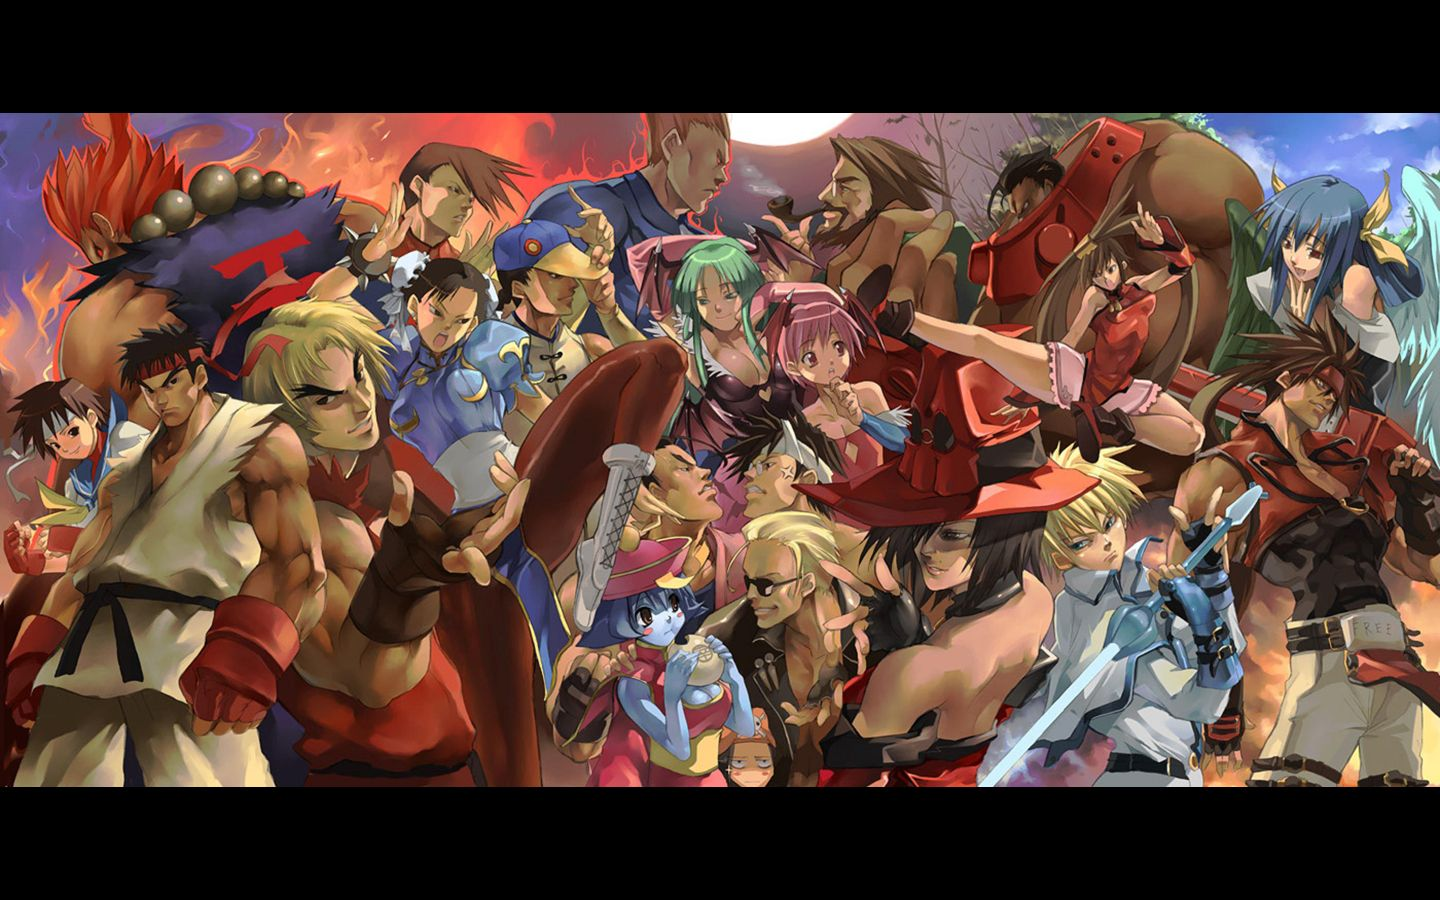 Wallpaper street fighter anime wallpaper hd pinterest street wallpaper street fighter voltagebd Choice Image